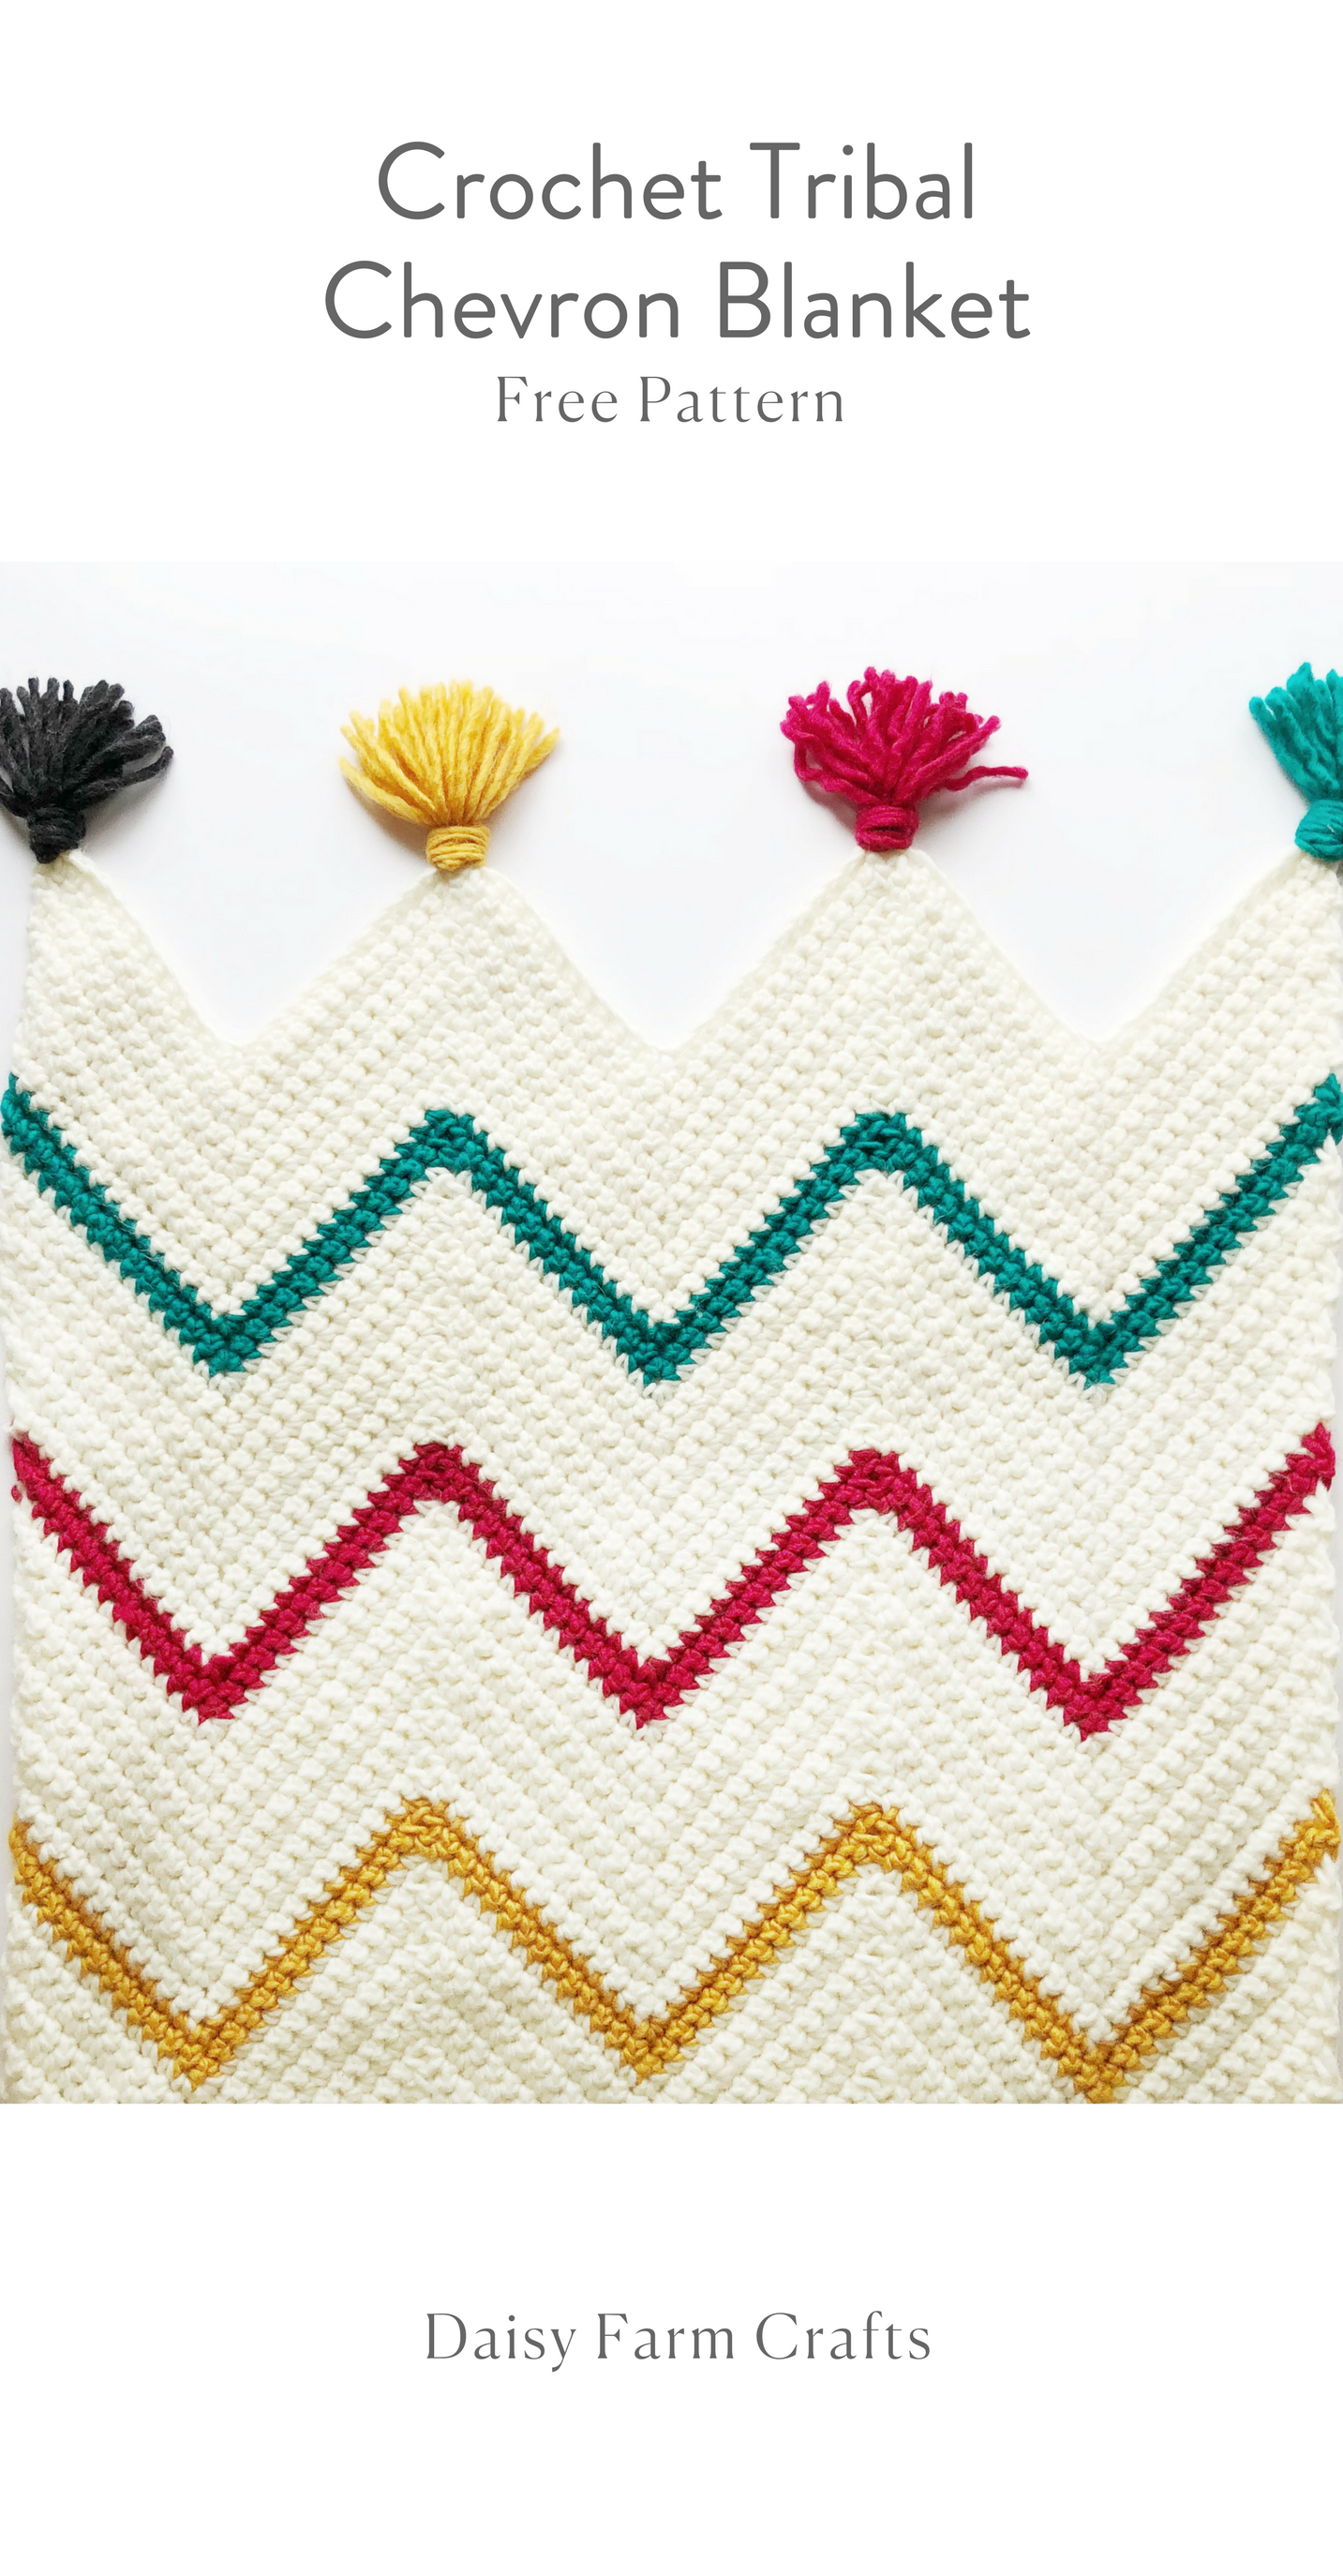 Free Pattern - Crochet Tribal Chevron Blanket | tejidos | Pinterest ...